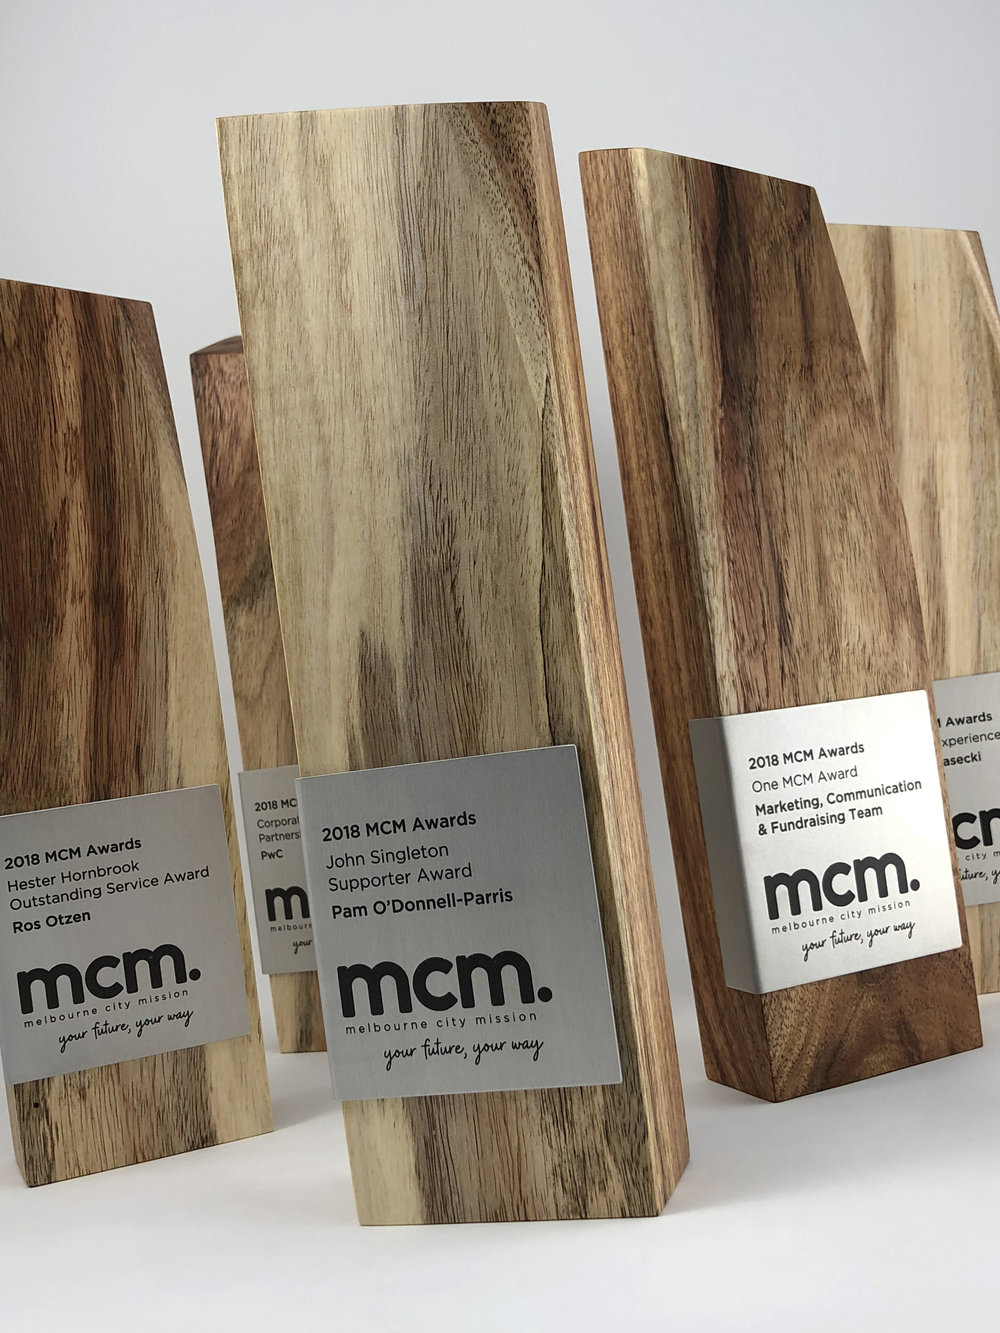 mcm-awards-reclaimed-eco-timber-chamfer-metal-trophy-03.jpg